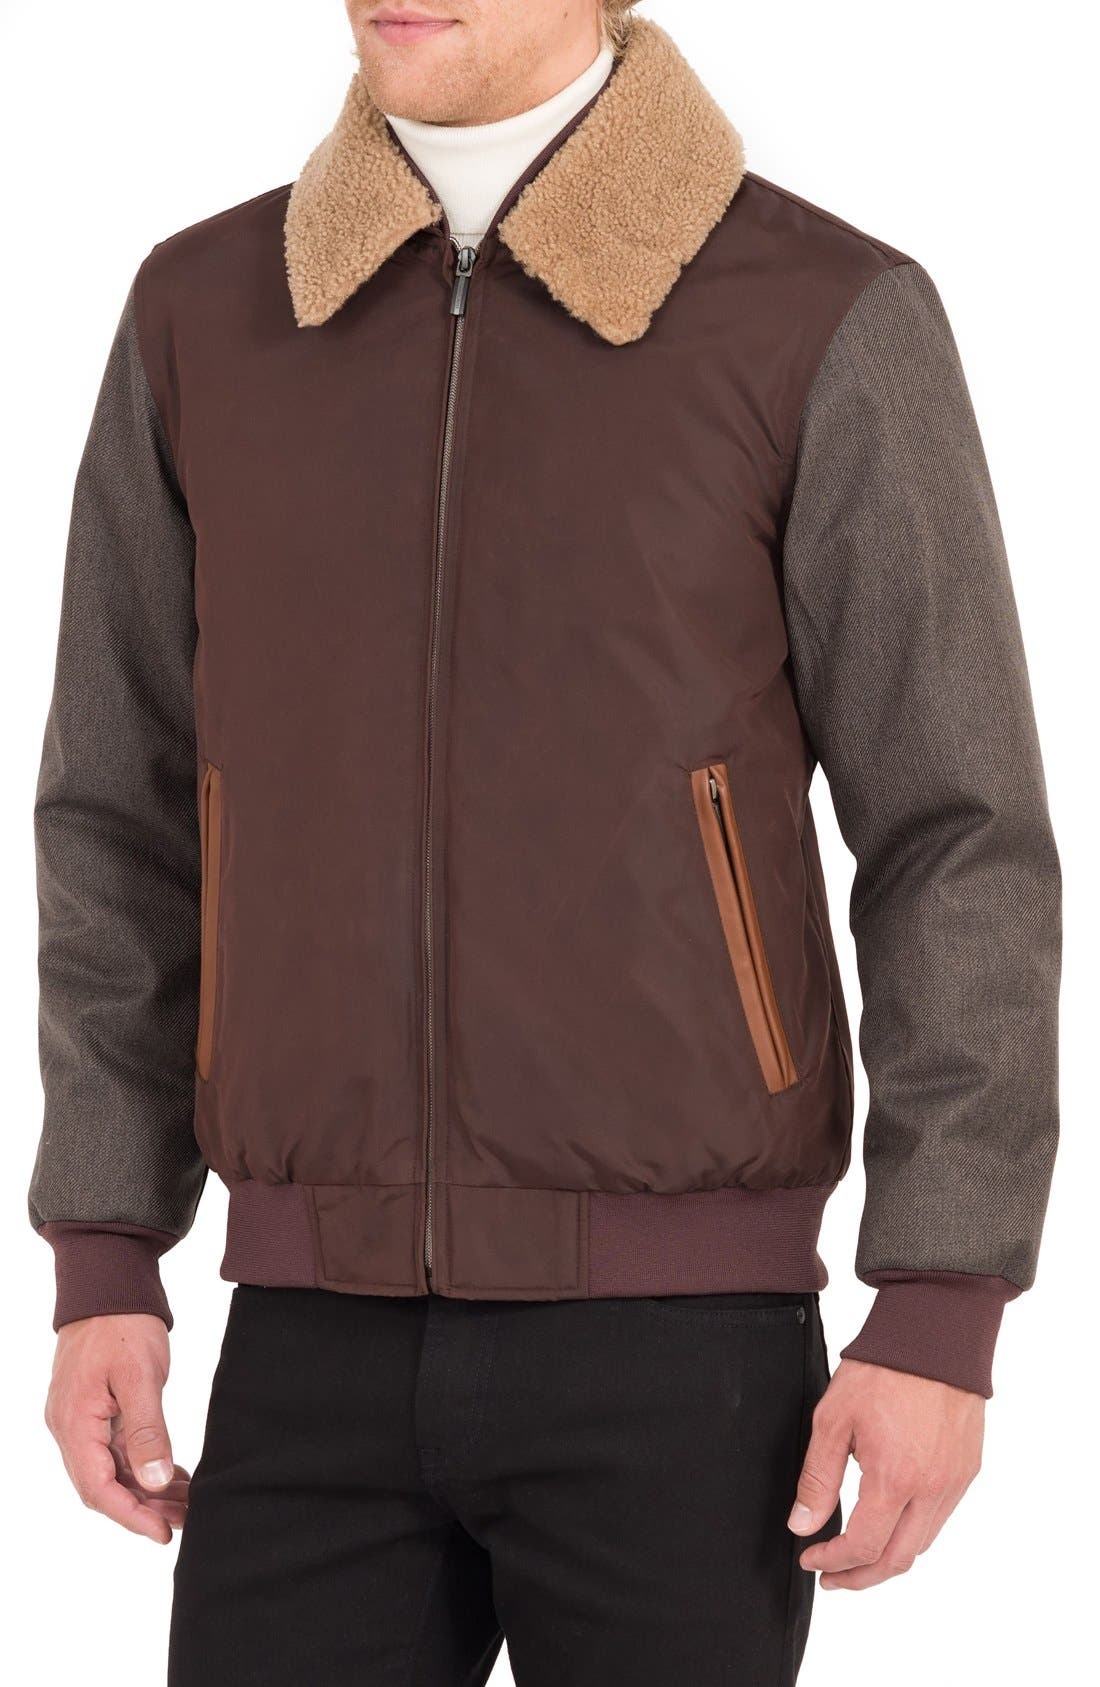 Waxed Nylon Jacket with Faux Shearling Collar,                             Alternate thumbnail 9, color,                             930